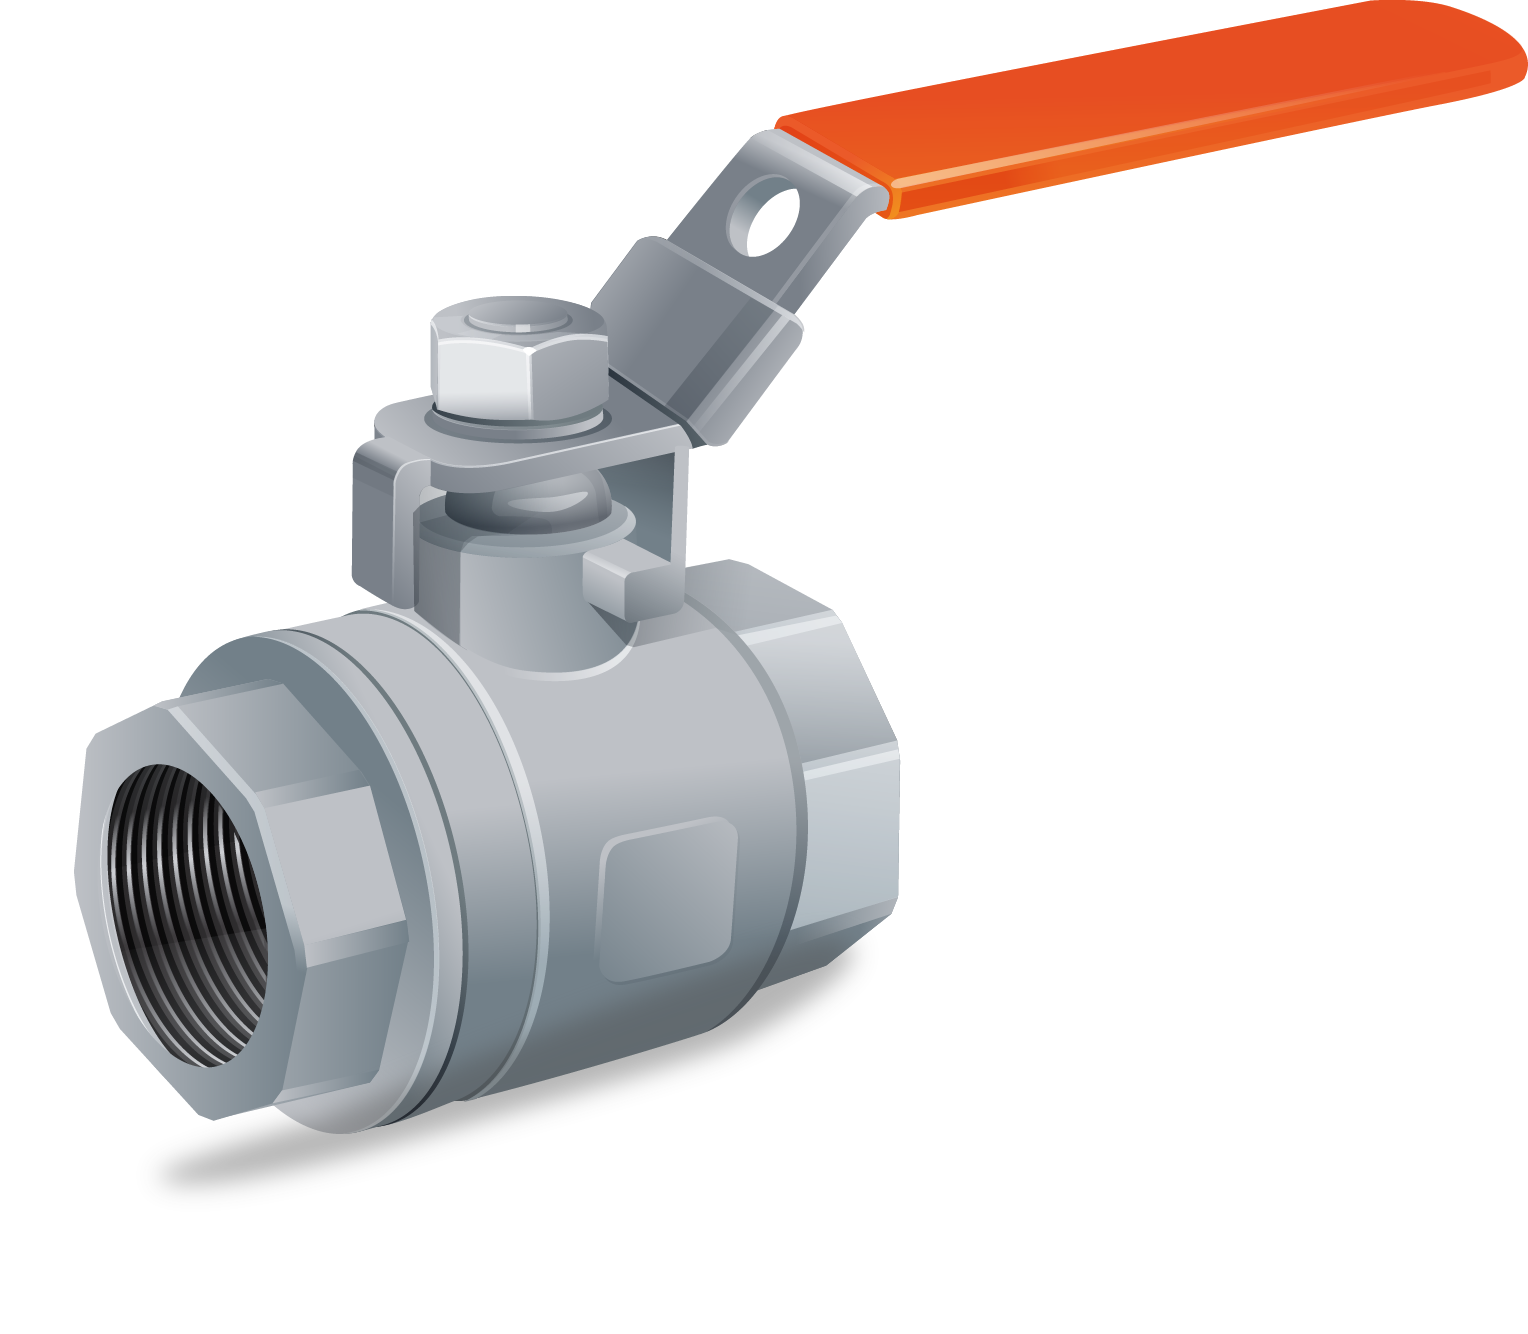 Oil gas ball suppliers. Pipe clipart valve